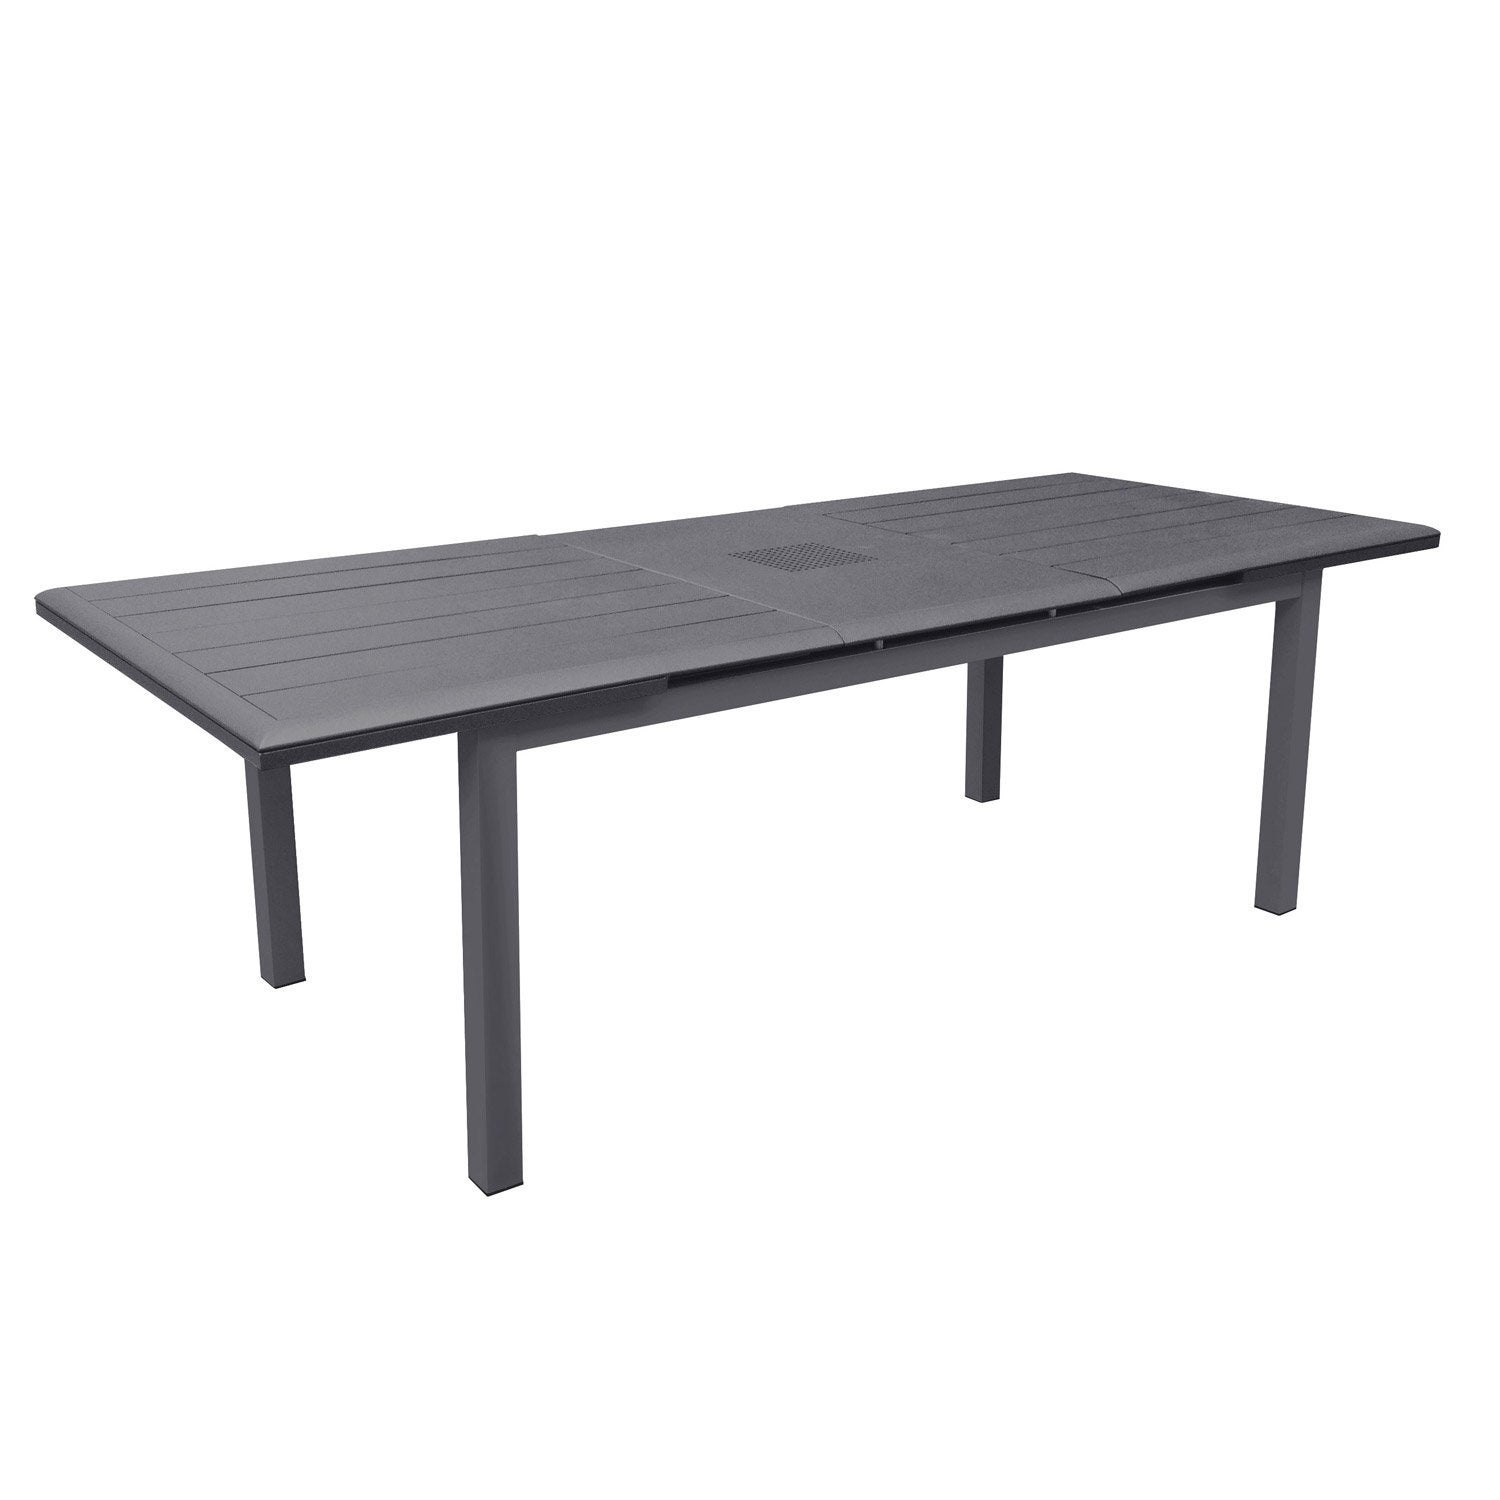 Table de jardin louisiane rectangulaire gris 6 8 personnes for Bache de table de jardin